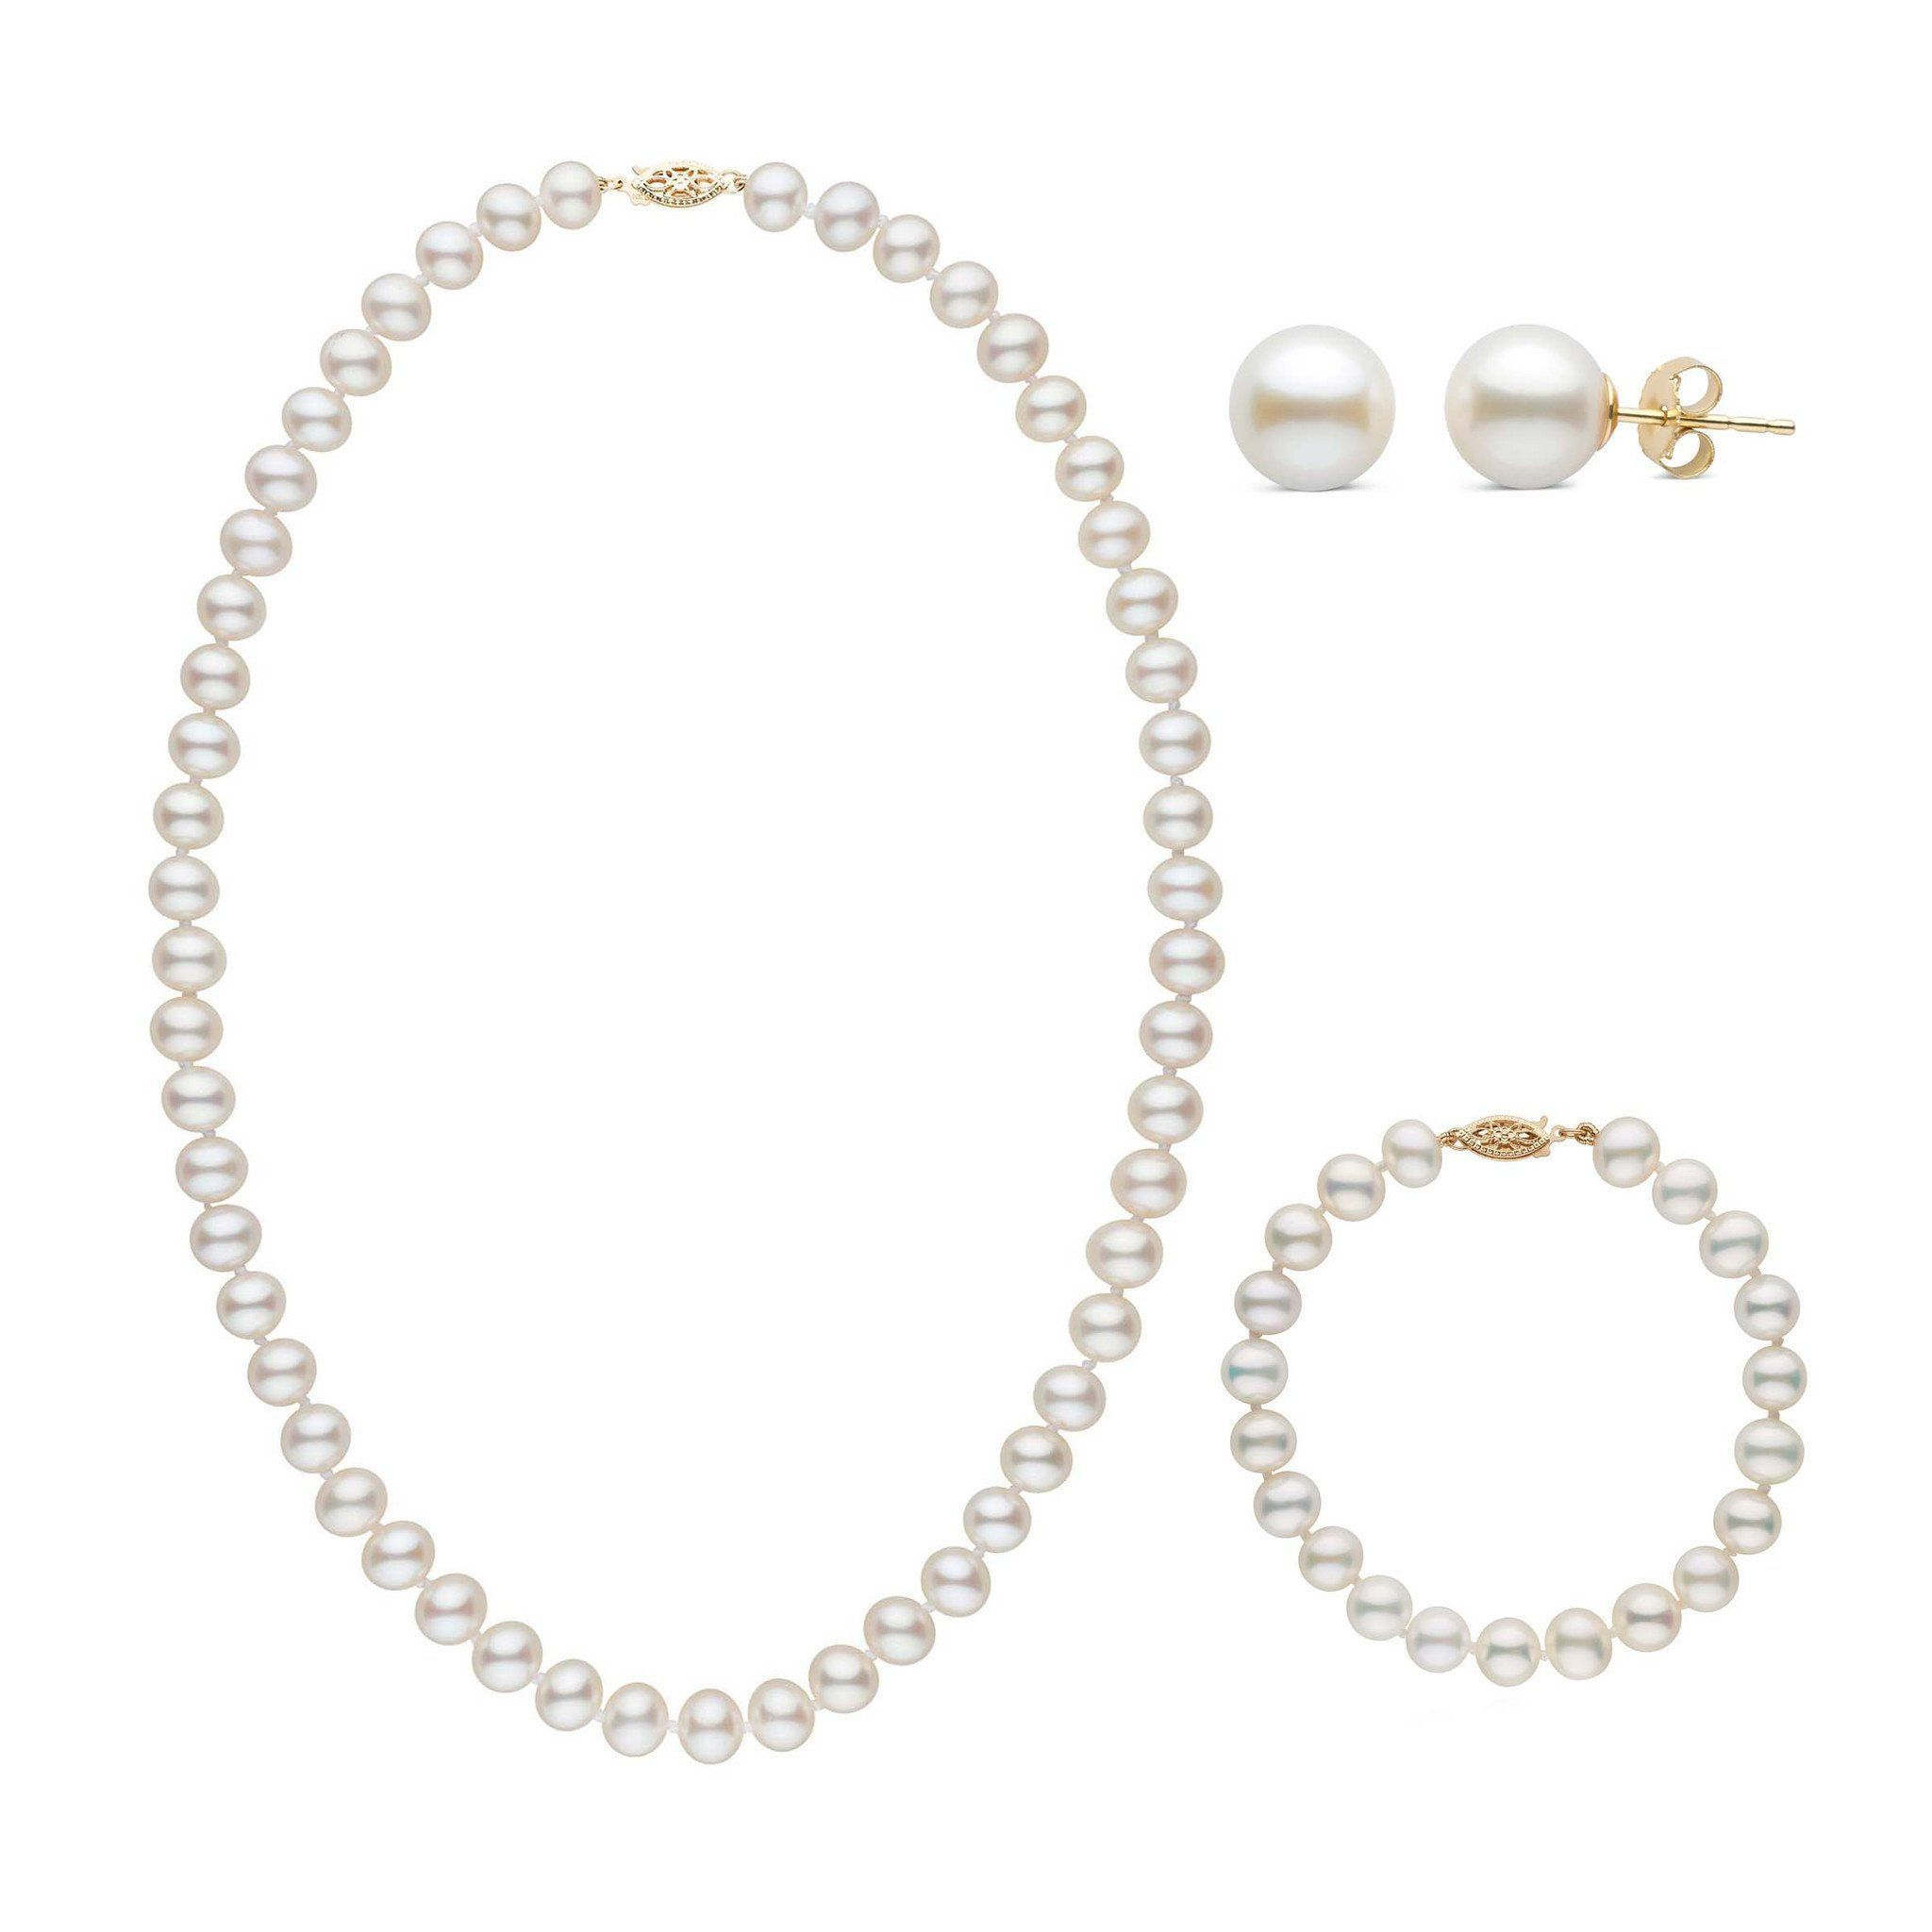 18 Inch 3 Piece Set of 7.5-8.0 mm AA+ White Freshwater Pearls